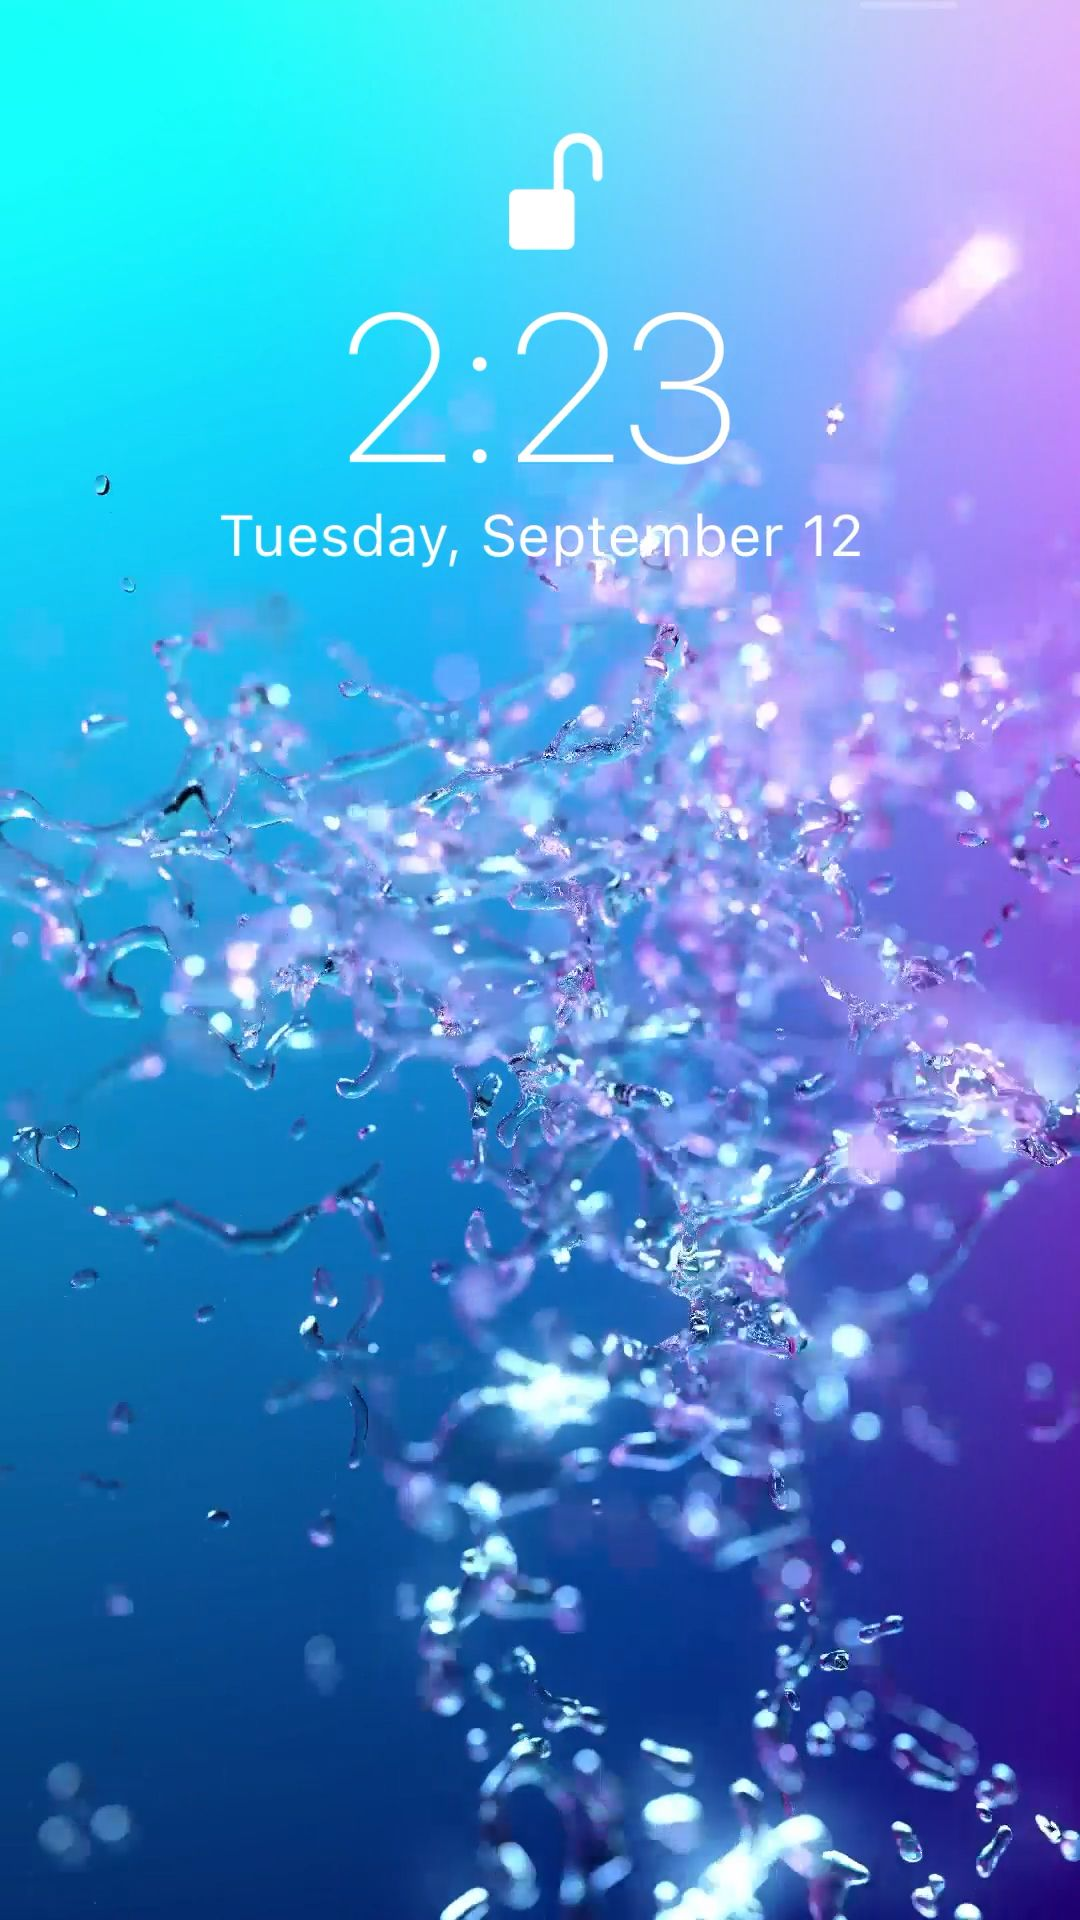 The Best Of Water Wallpapers Video Iphone Wallpaper Video Live Wallpaper Iphone Pretty Wallpaper Iphone